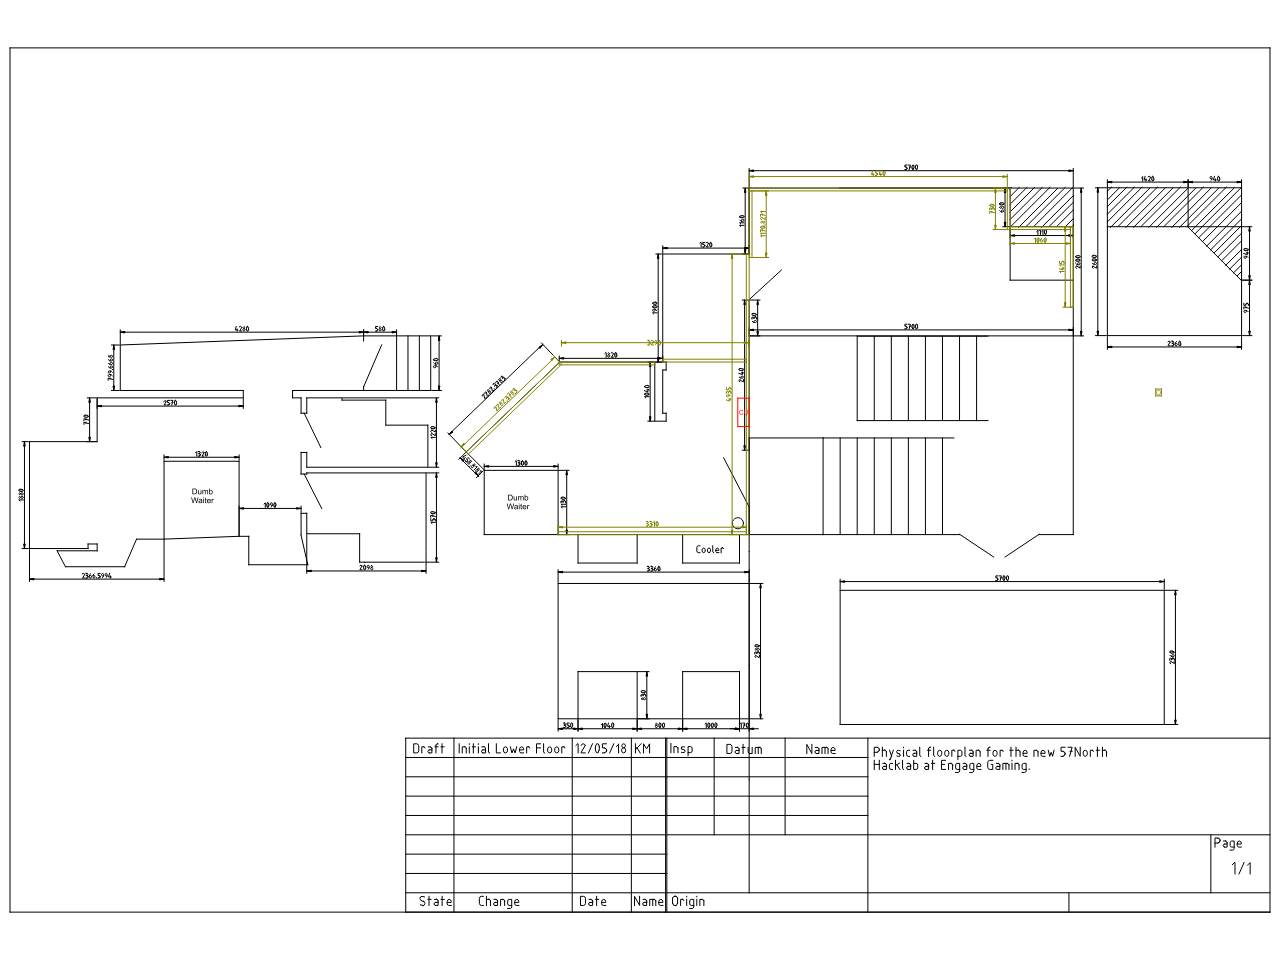 file:floorplan-conduit.png